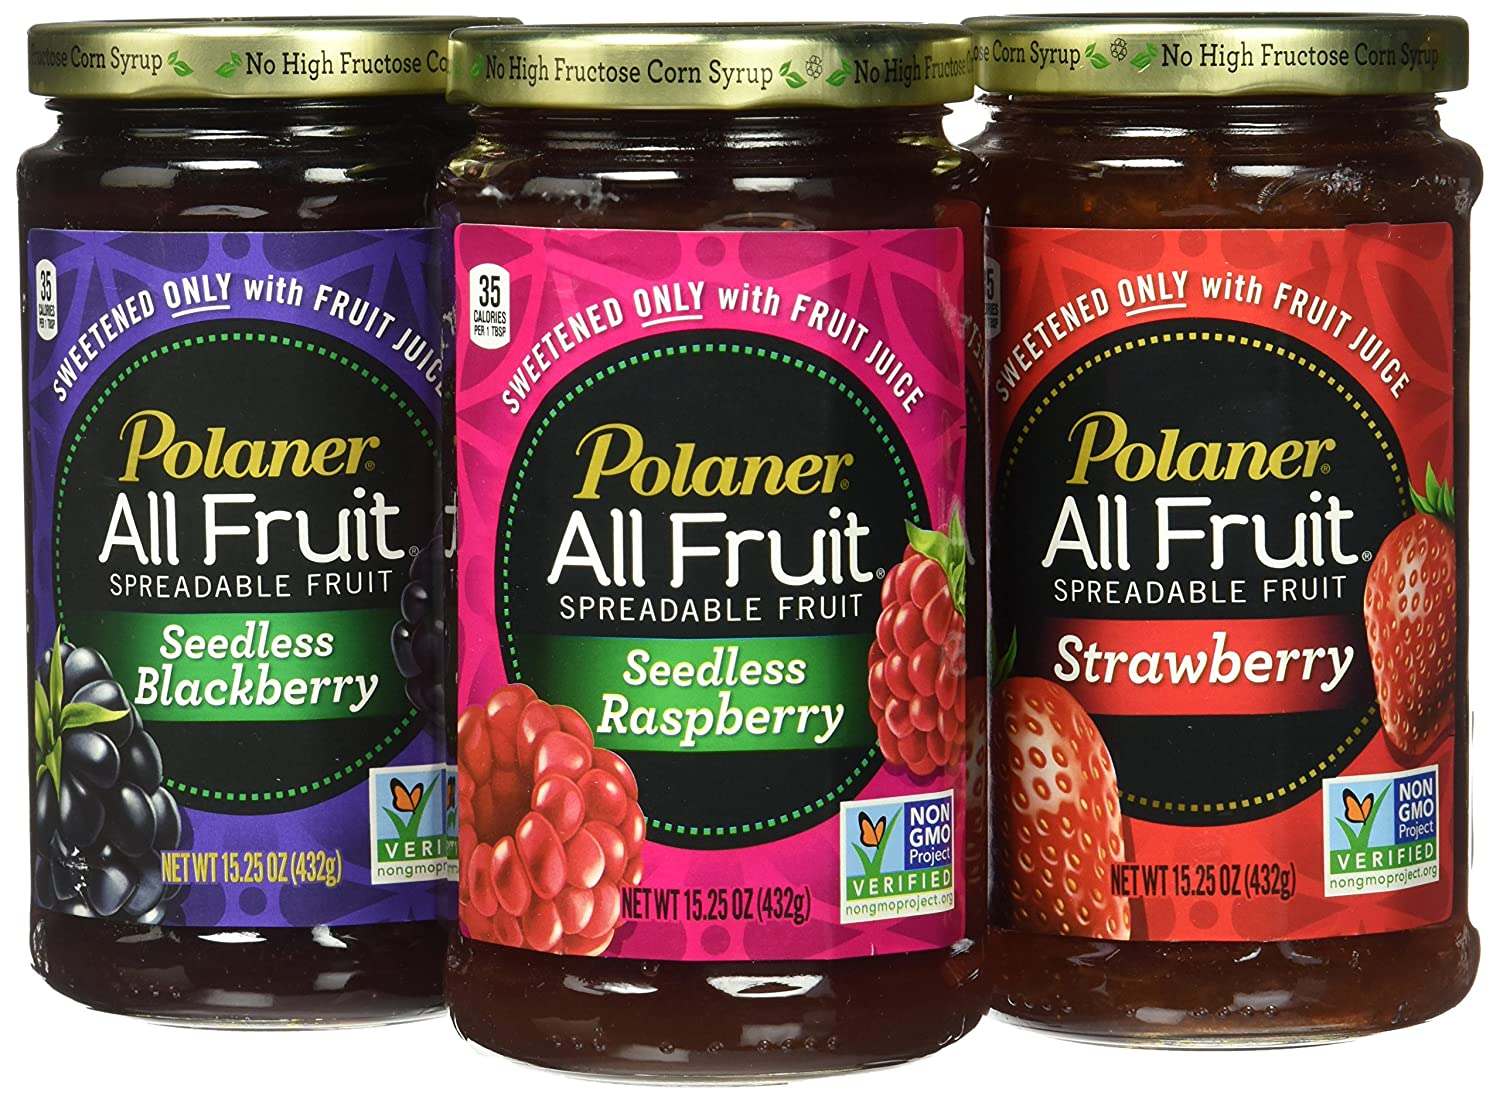 Polaner All Fruit Non-GMO Spreadable Fruit, Assorted Flavors, Strawberry, 15.25 Ounce (Pack of 3)